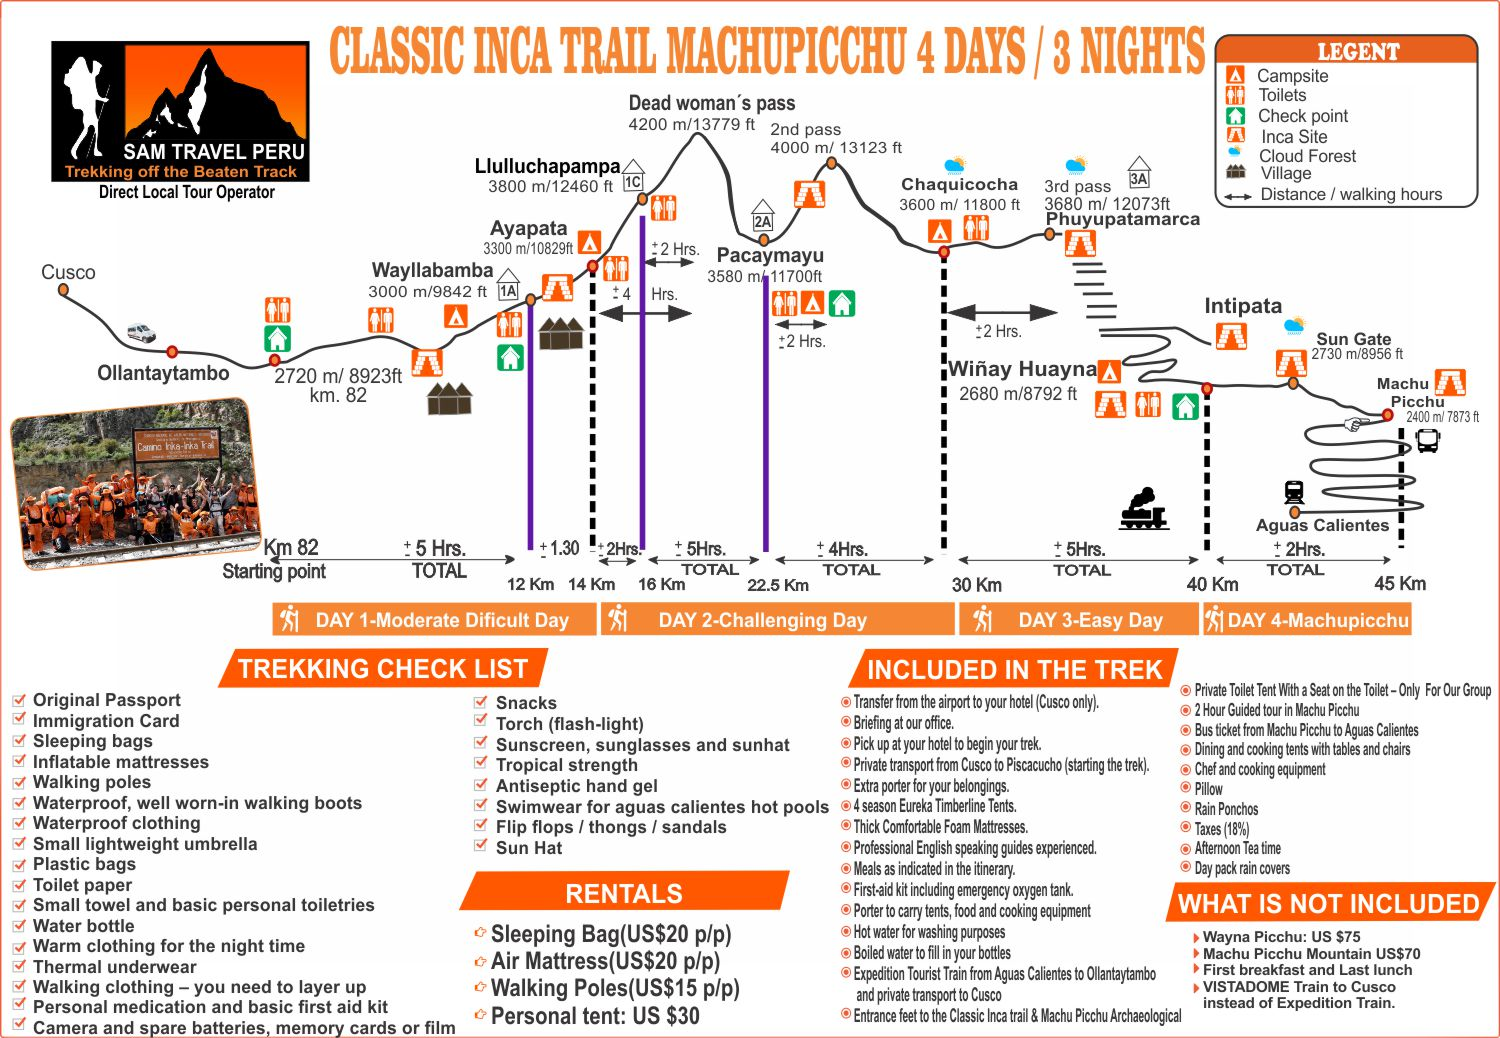 classic inca trail 4d-3n-sam-travel-peru-cusco